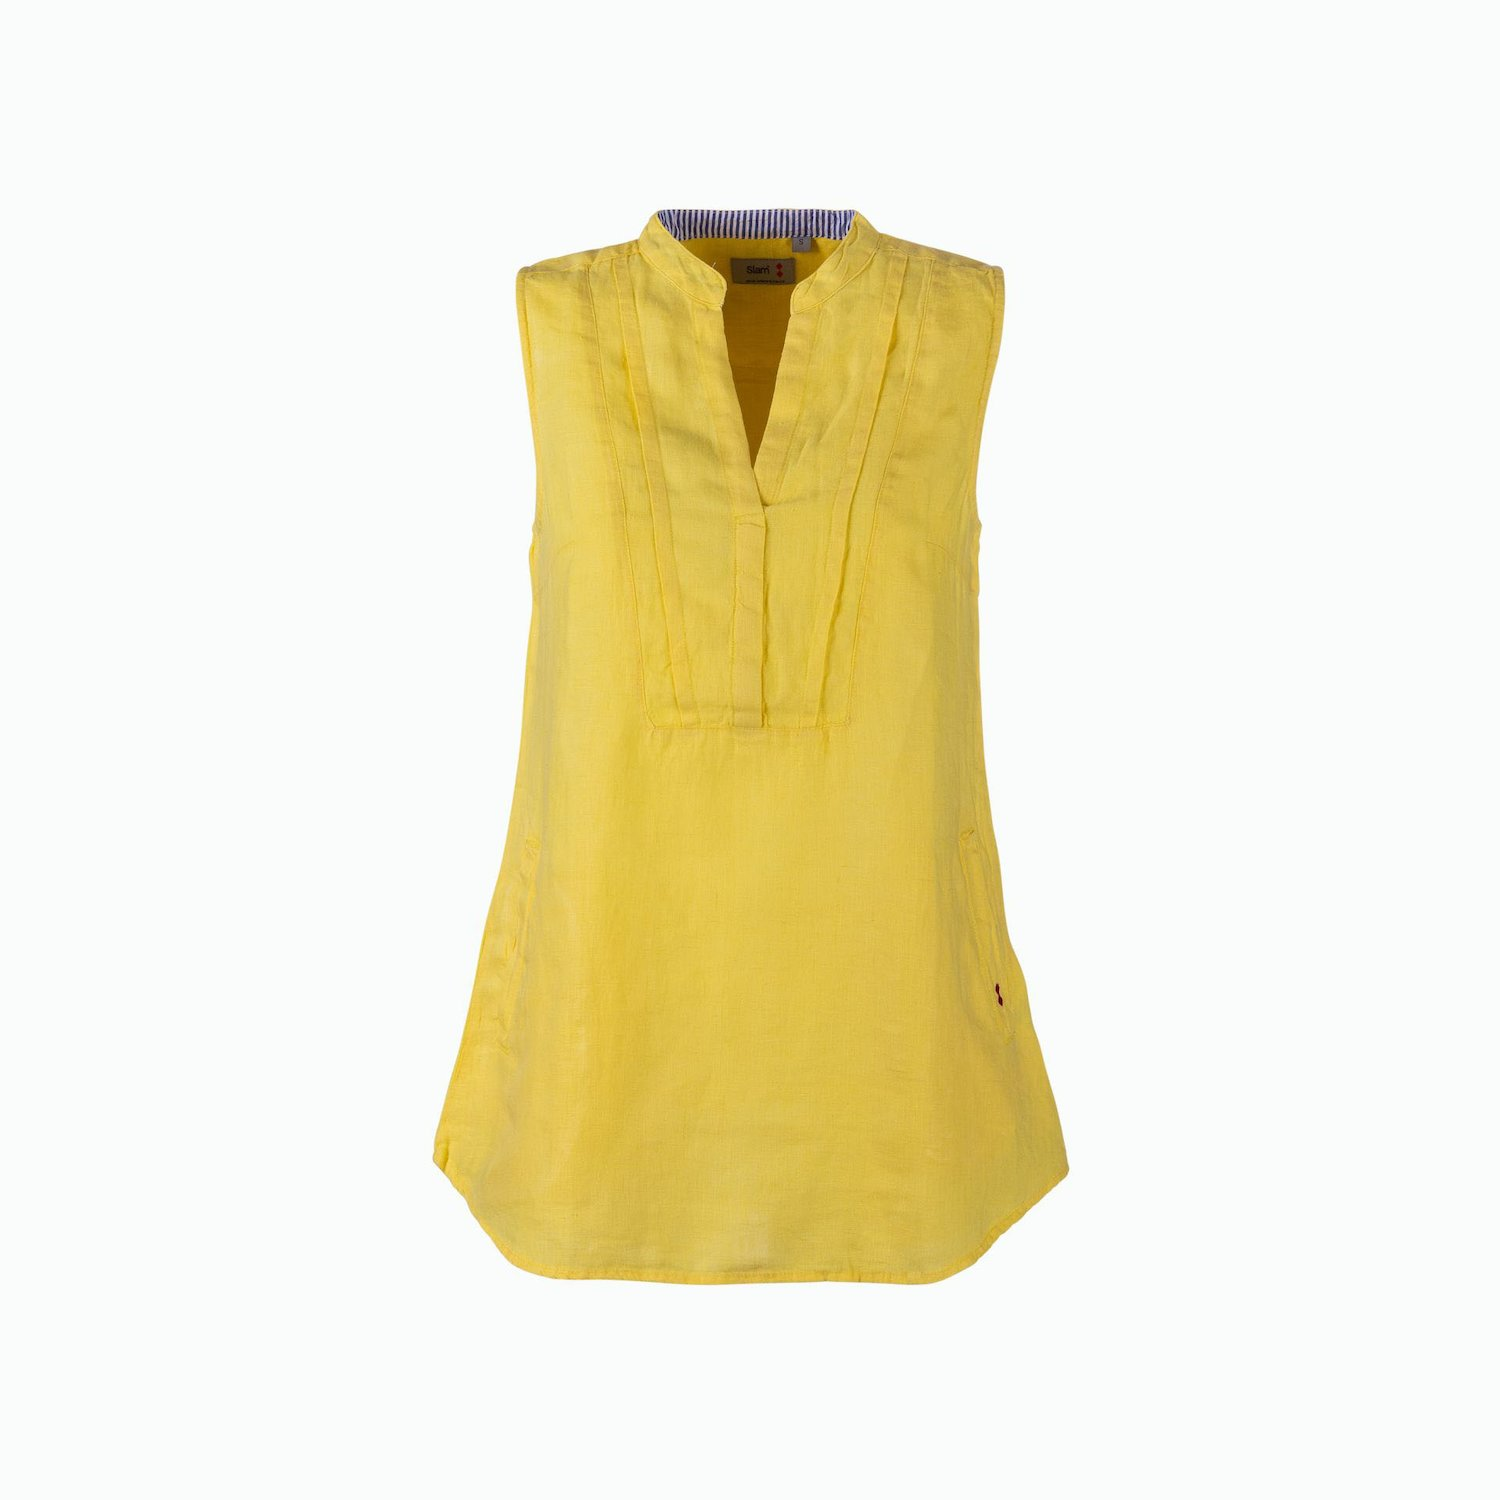 C11 Shirt - Lemon